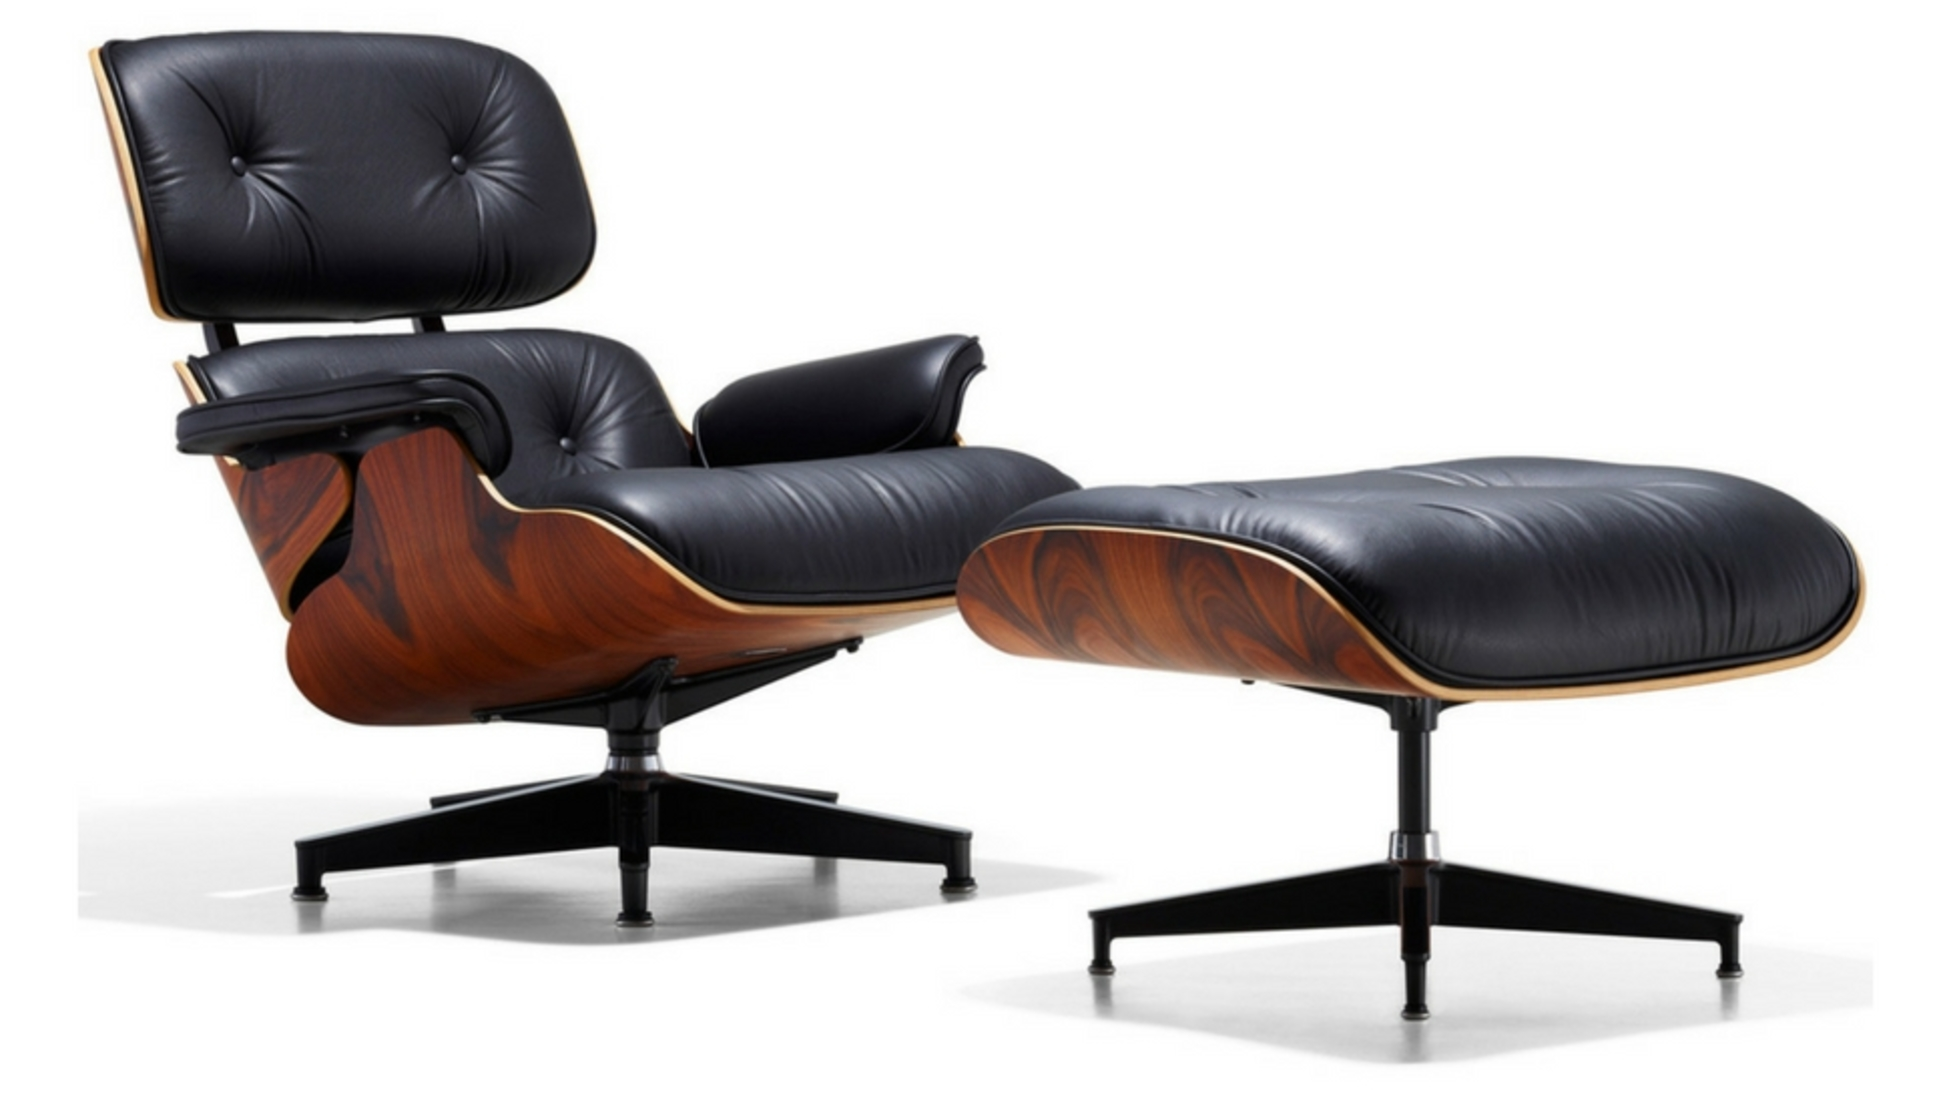 Top 5 Most Iconic Design Furniture Items Catawiki